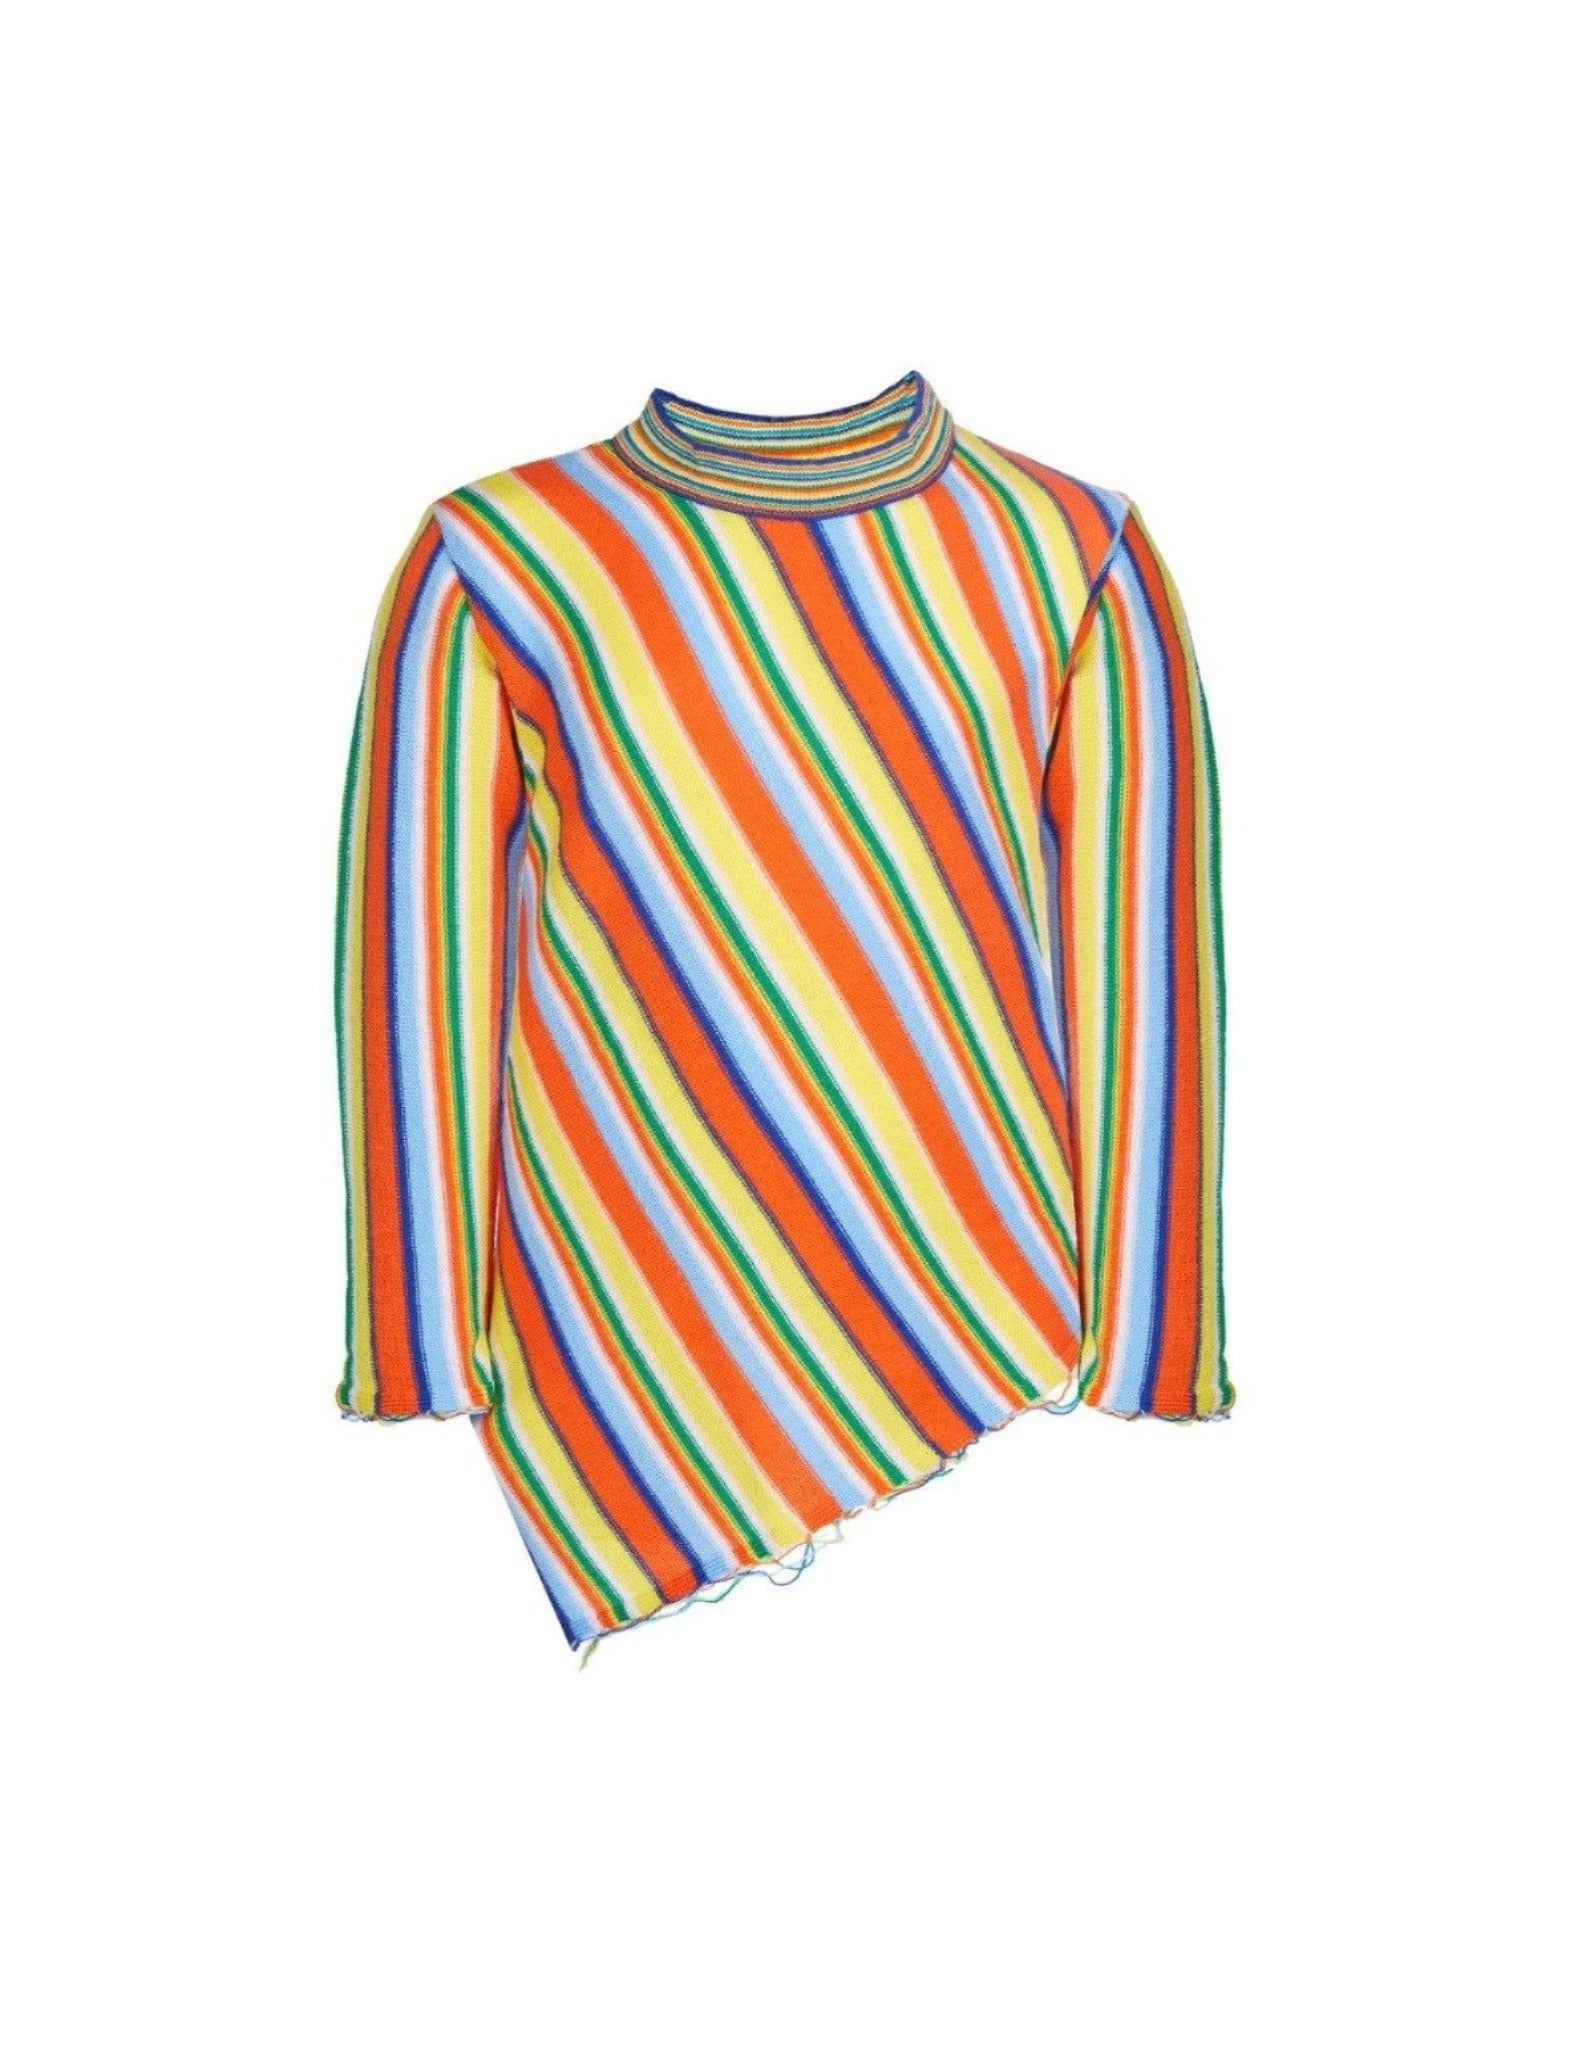 ASYMETRIC CREW NECK IN MULTI STRIPES